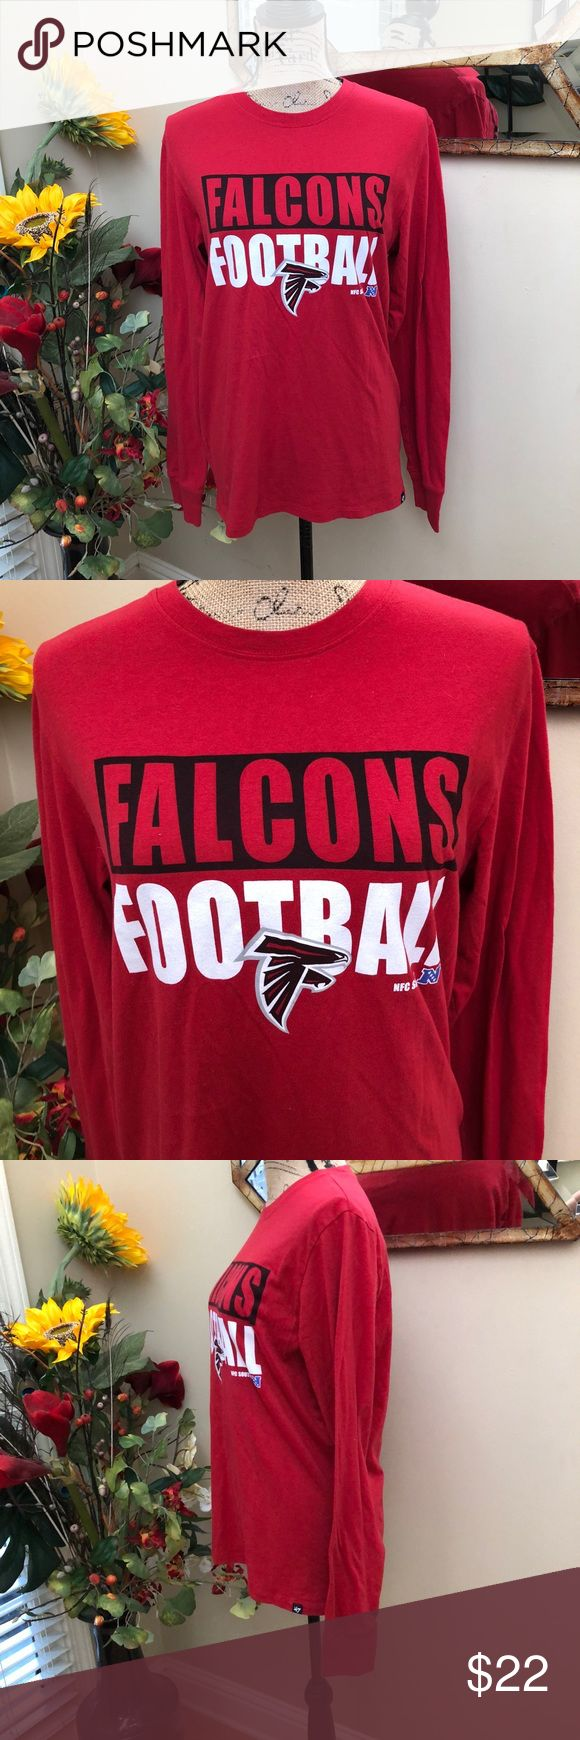 "🌹ATLANTA Falcons long sleeve game day tee! 🌹ATLANTA Falcons long sleeve game day tee! Great way to show your support for the home team! NFC South. Preloved in excellent condition. Pit to pit measurement is 18"". Length is 27"". 47 Tops Tees - Long Sleeve"